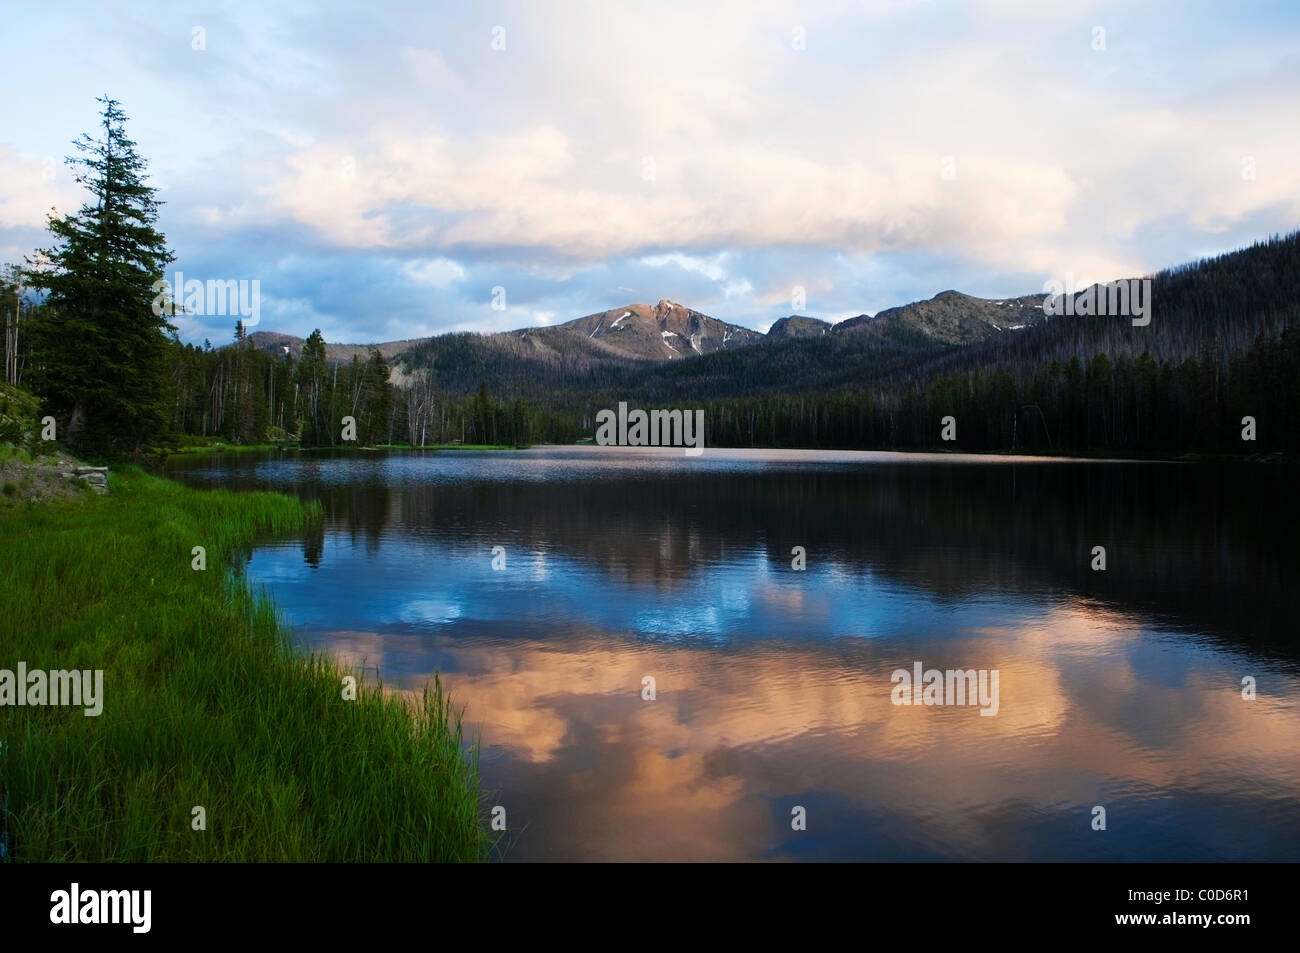 Landscape with clouds, mountains and reflection taken in Yellowstone National Park, Wyoming, USA. - Stock Image